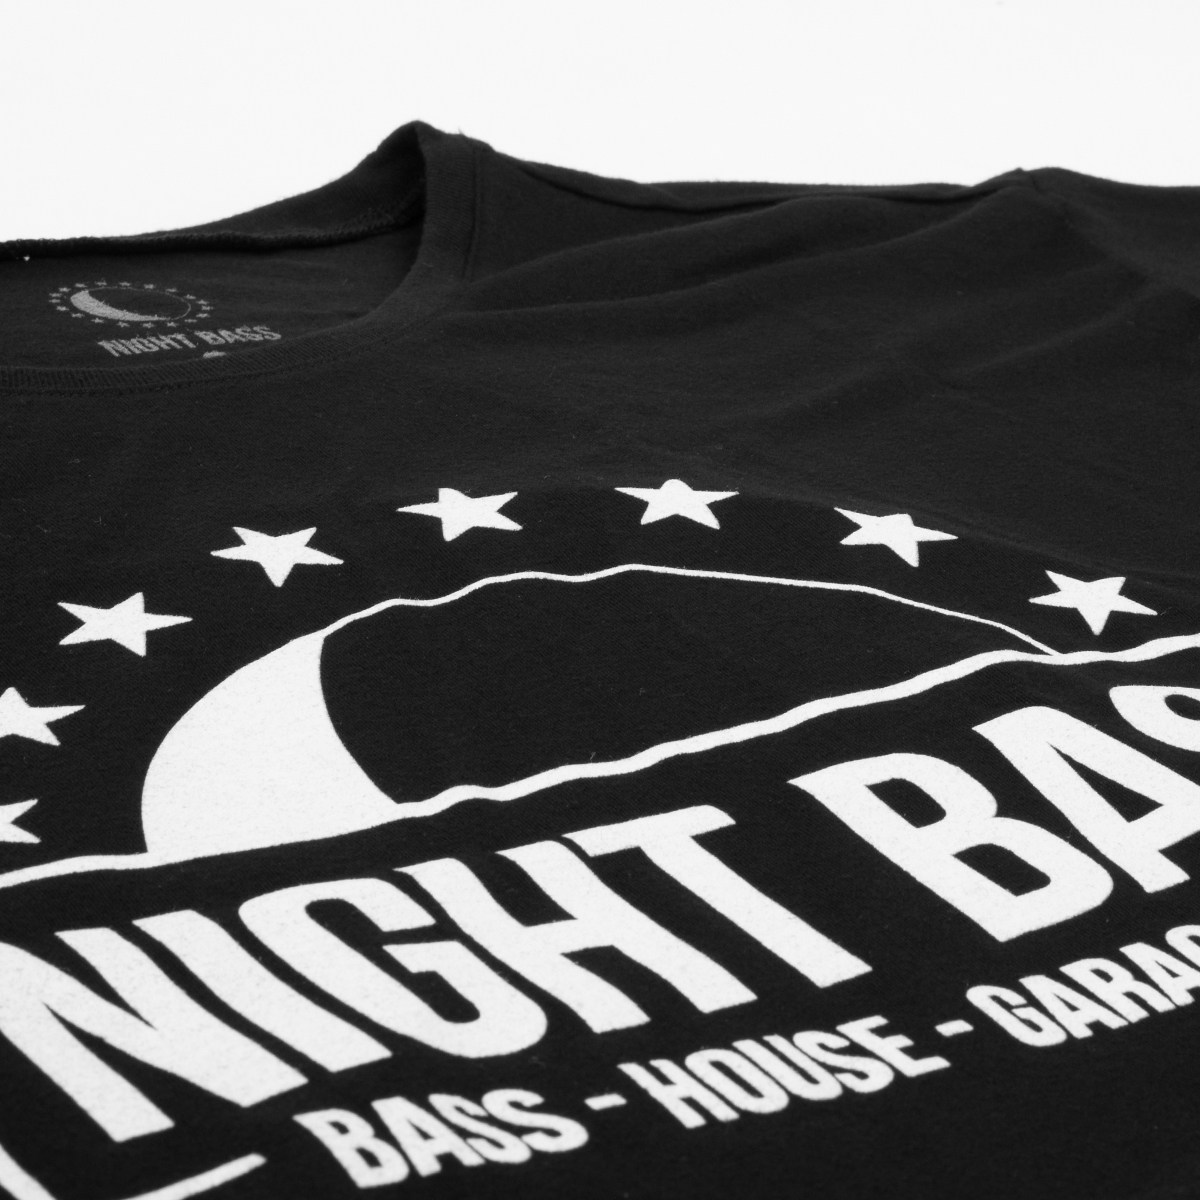 Night Bass Half Moon & Stars Women's Crop